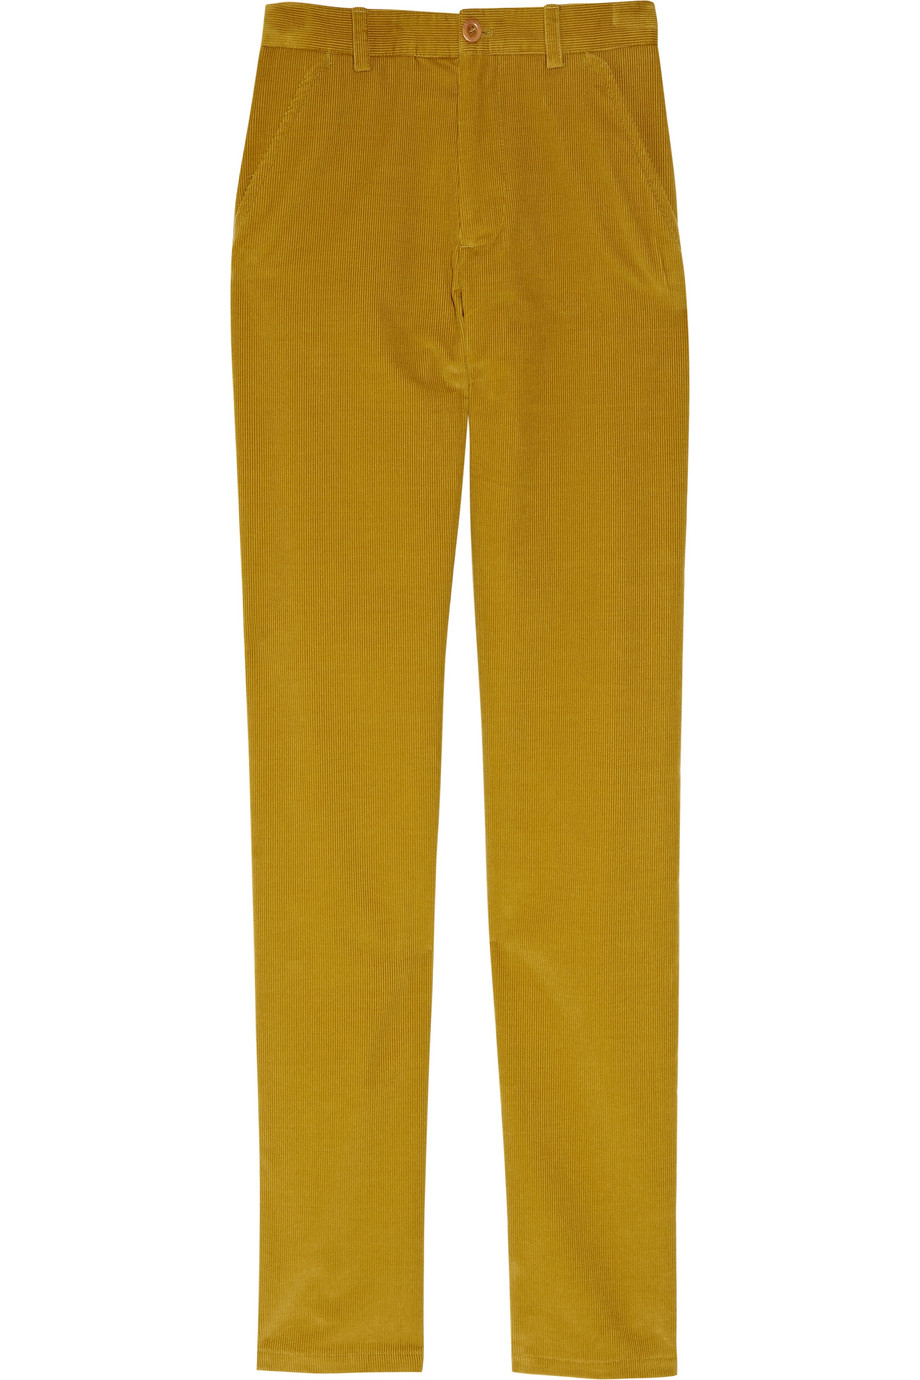 Simple Alythea Situationally Savvy Pants In Mustard In Yellow  Lyst